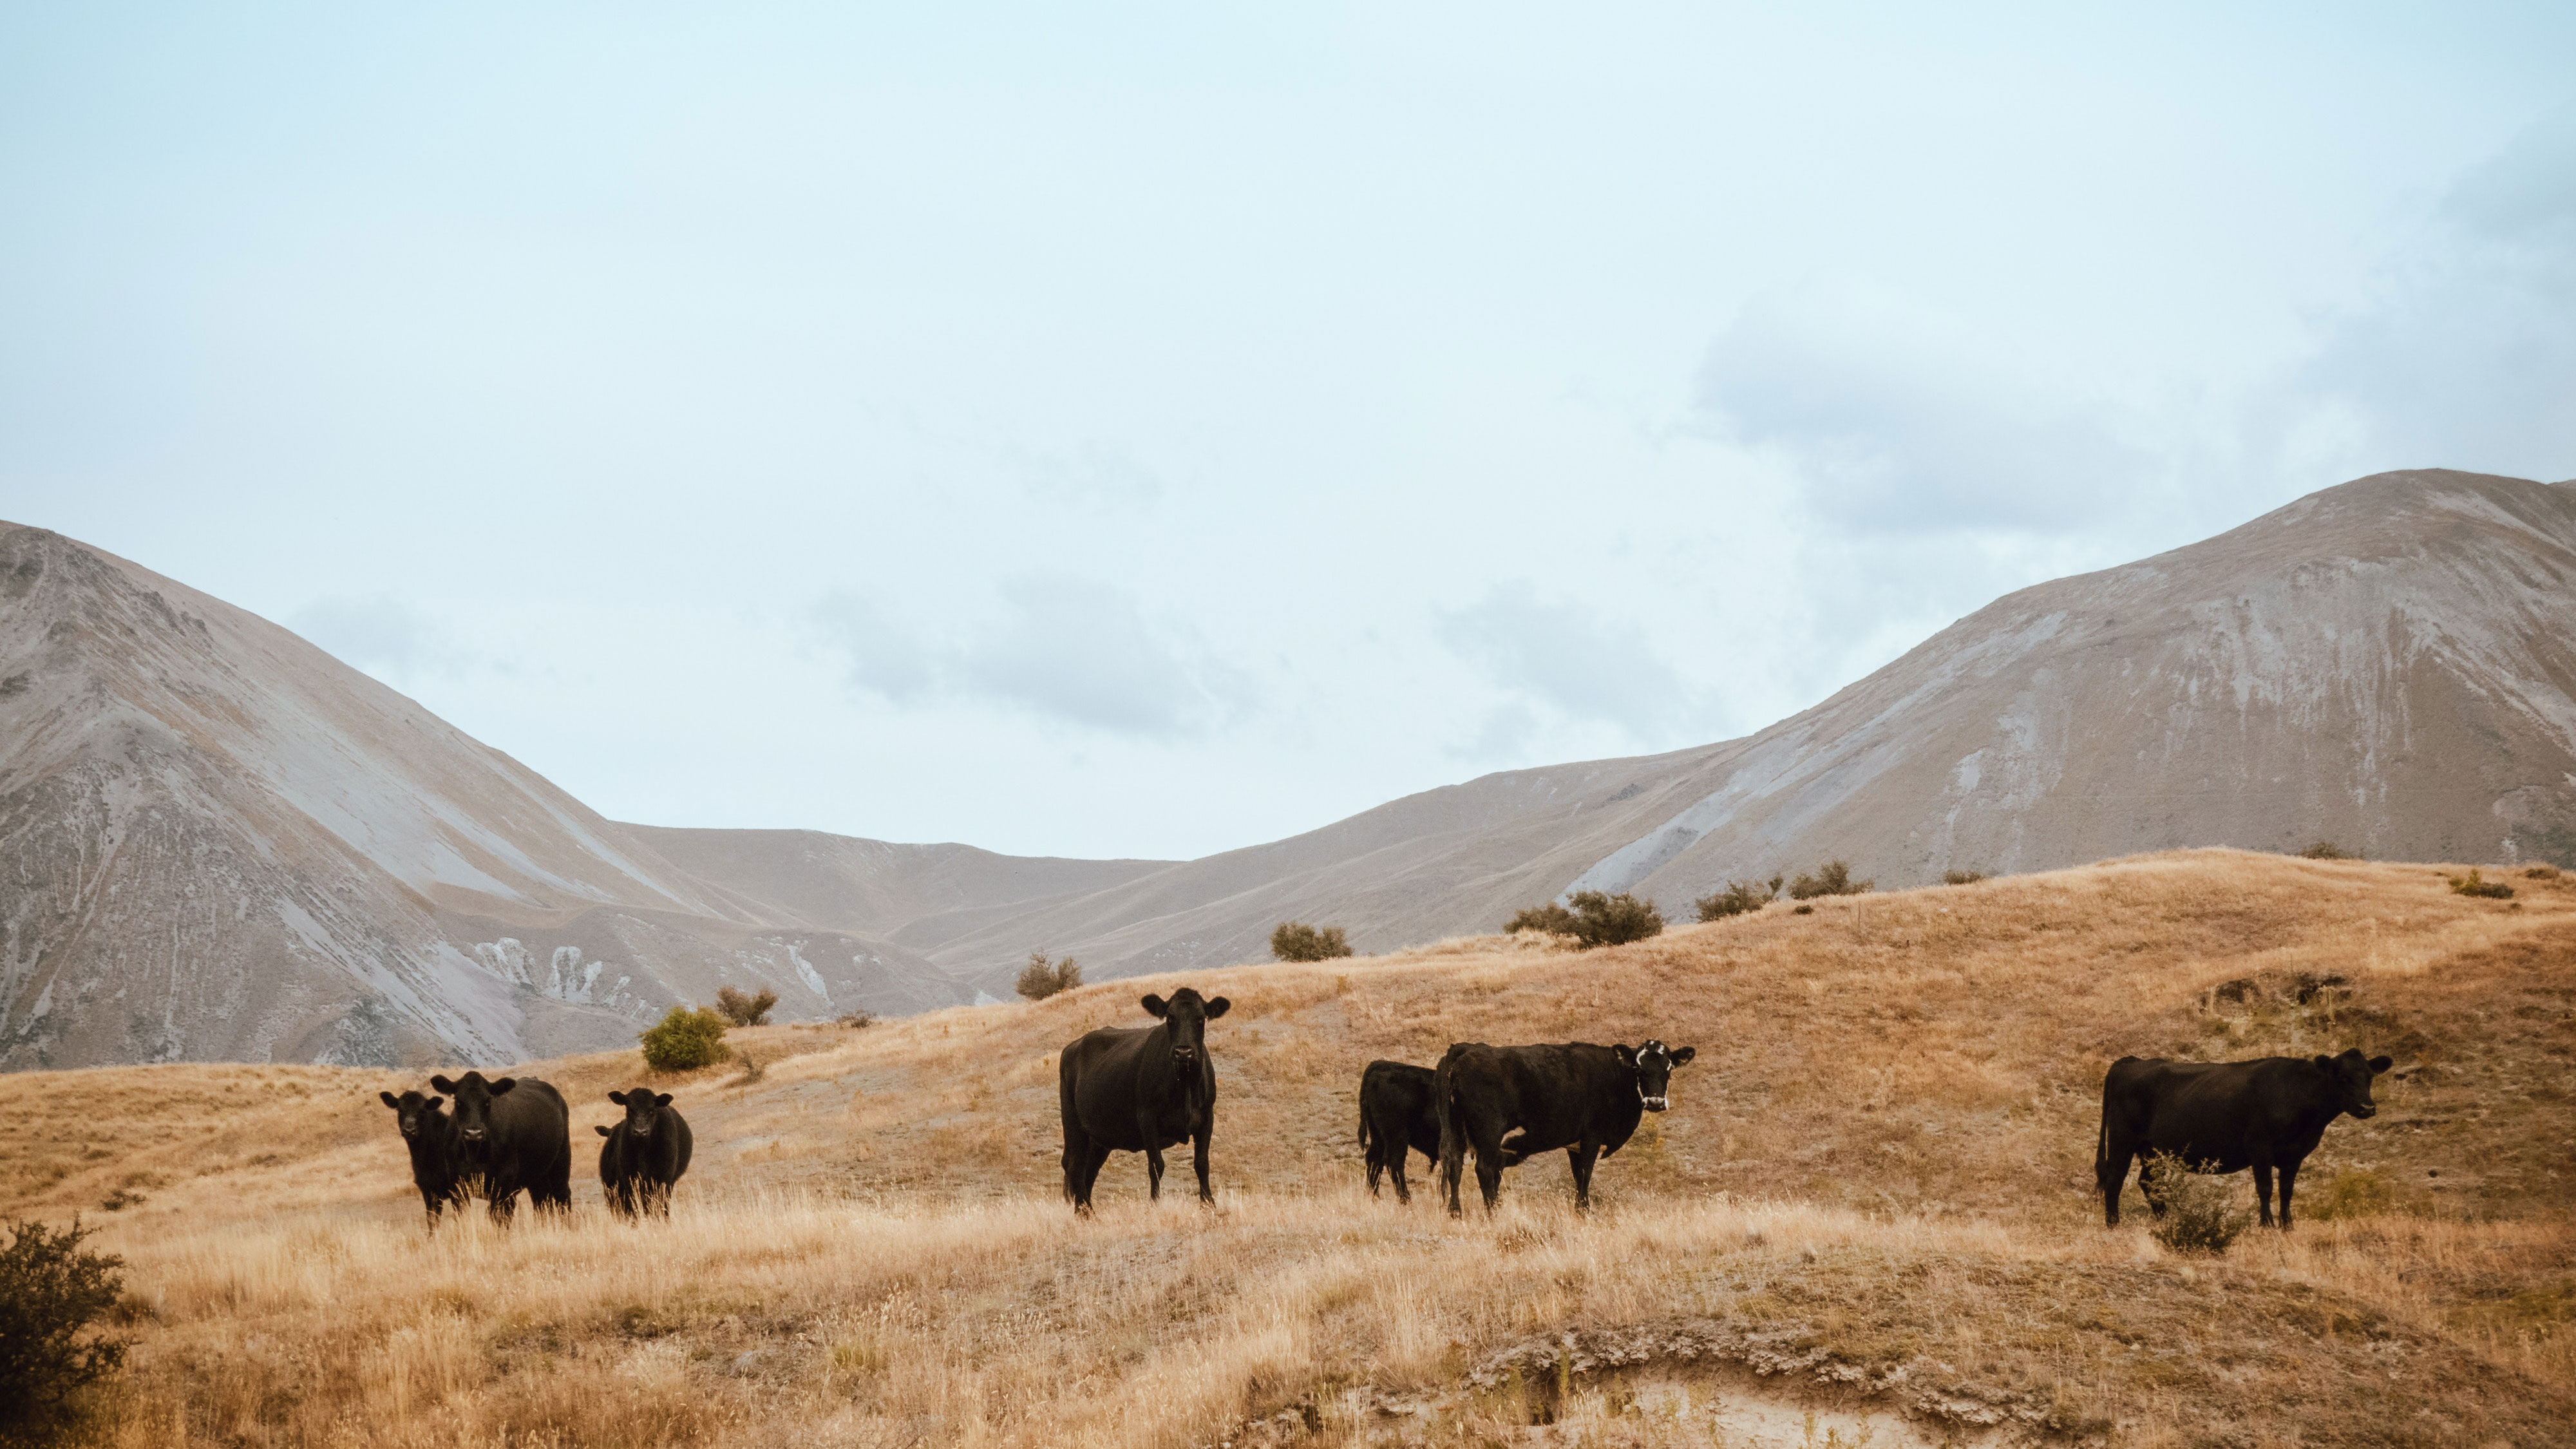 Five cows in foreground.